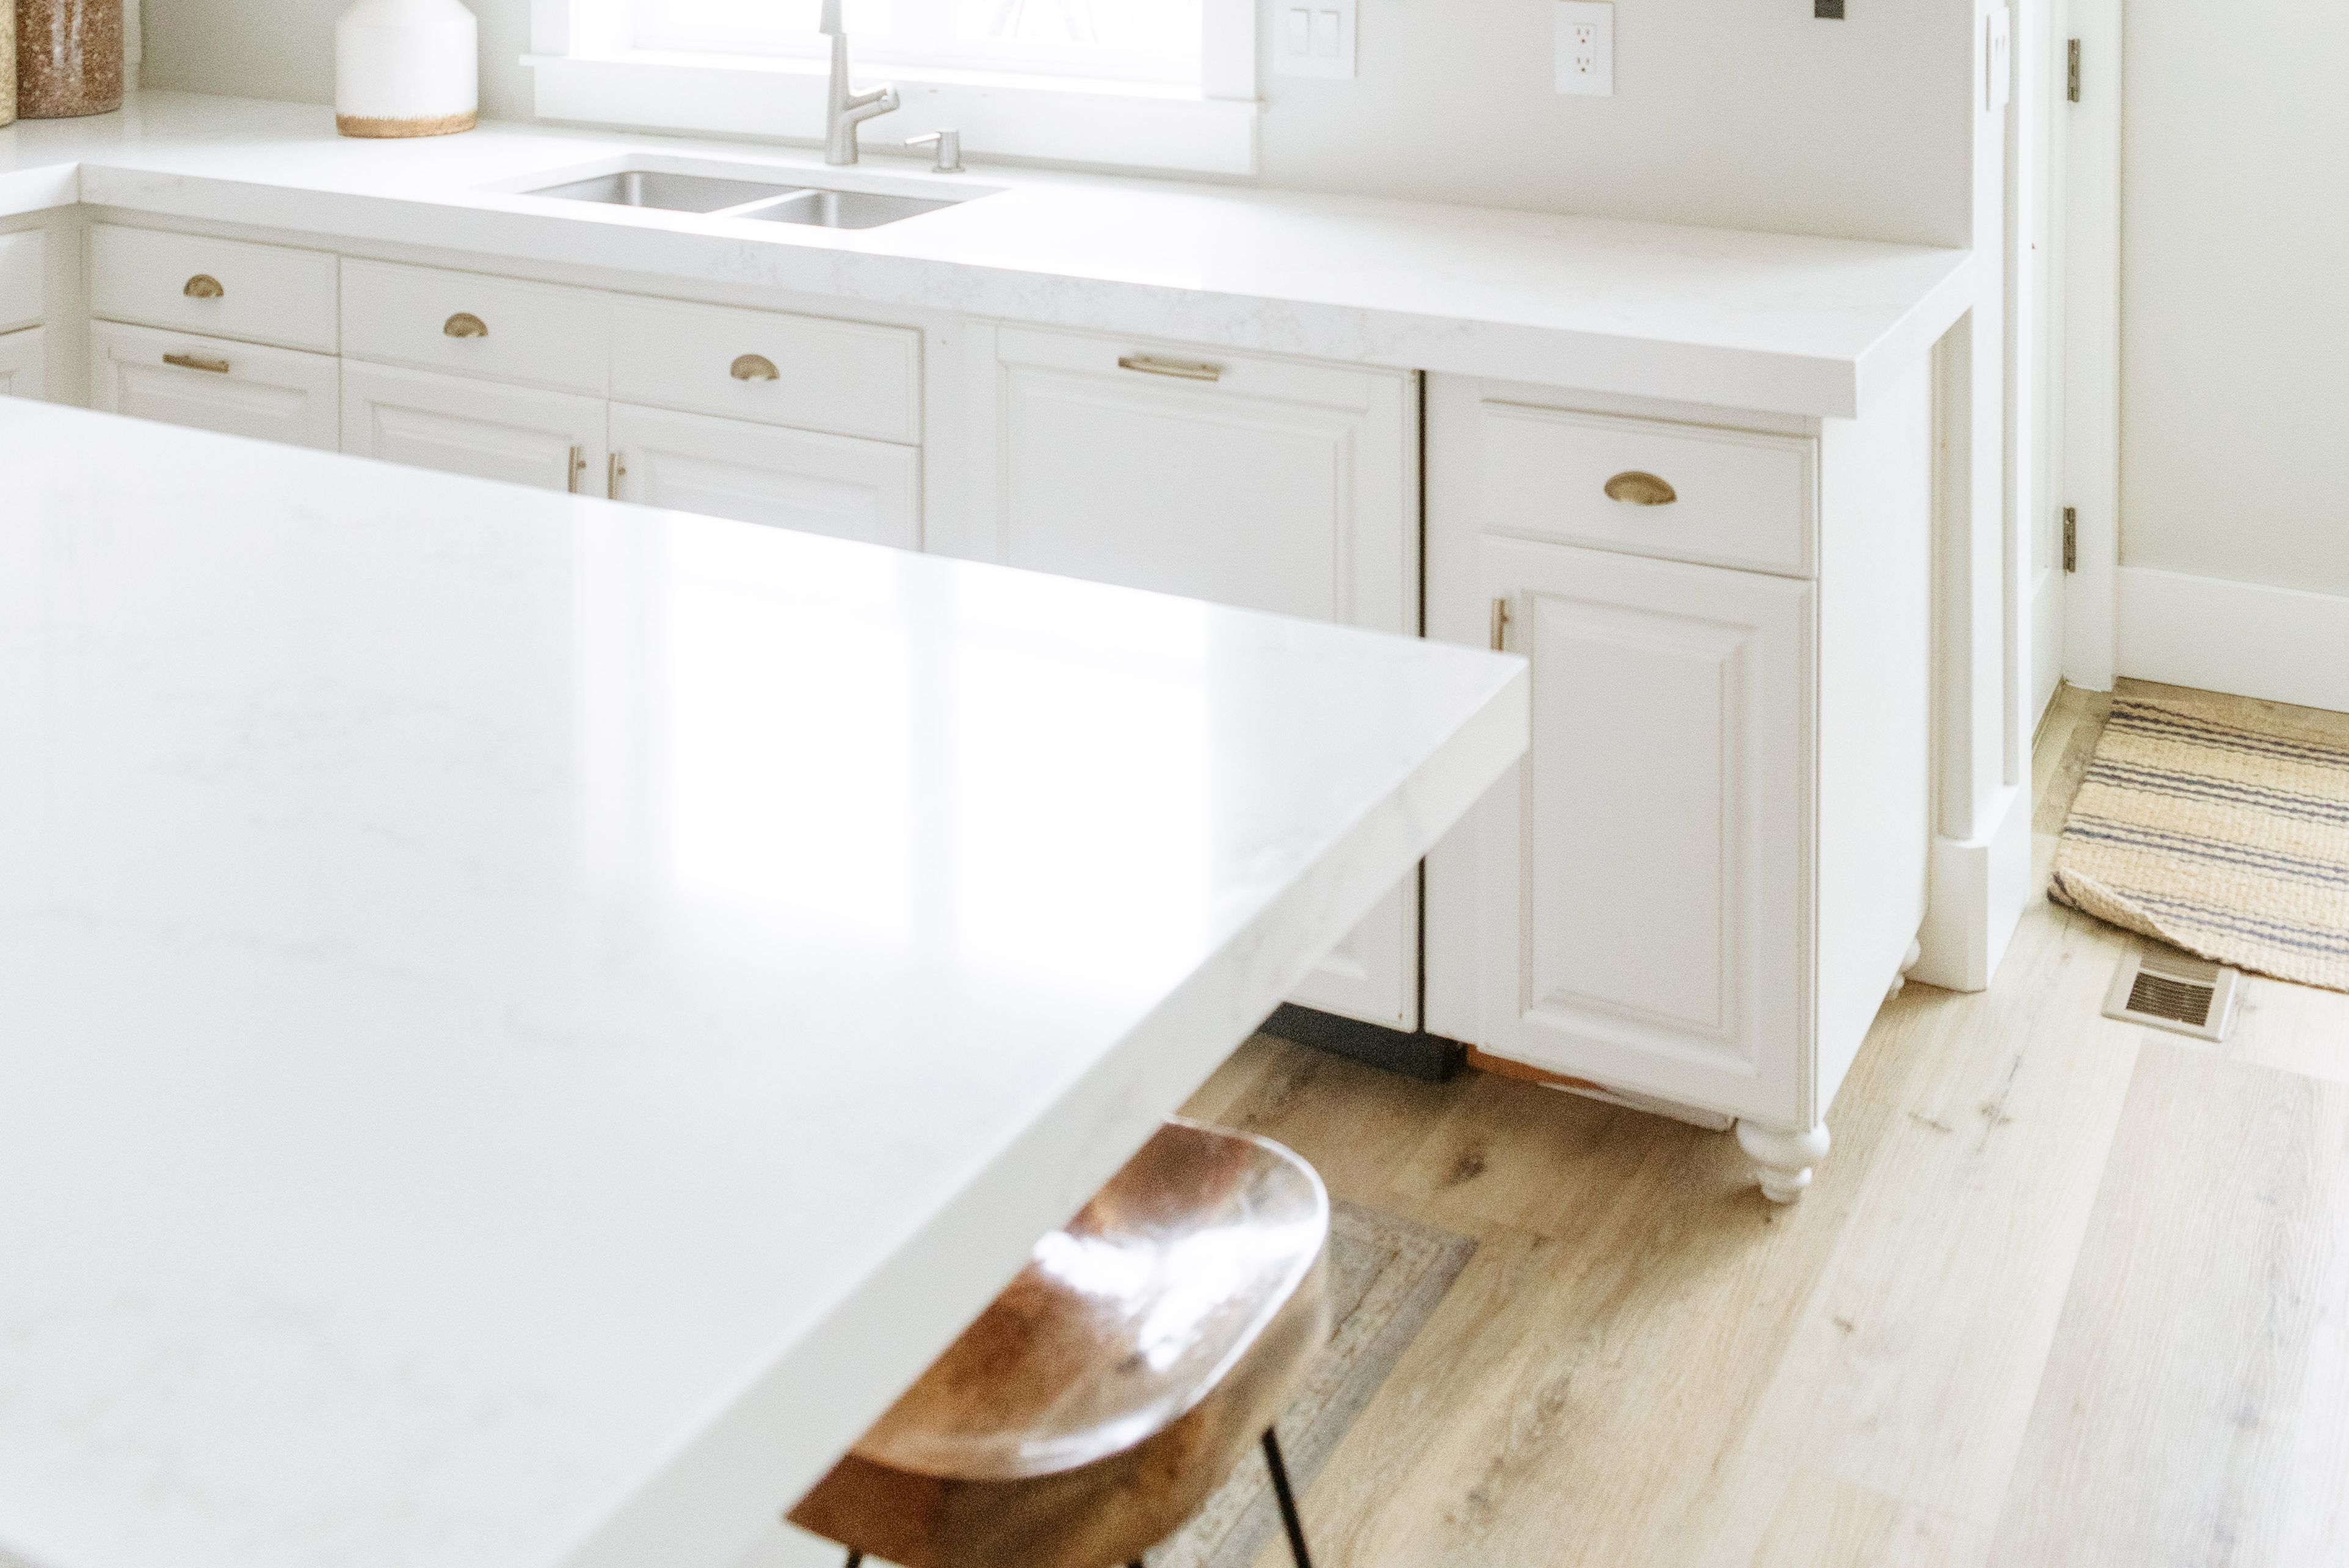 solid white countertops